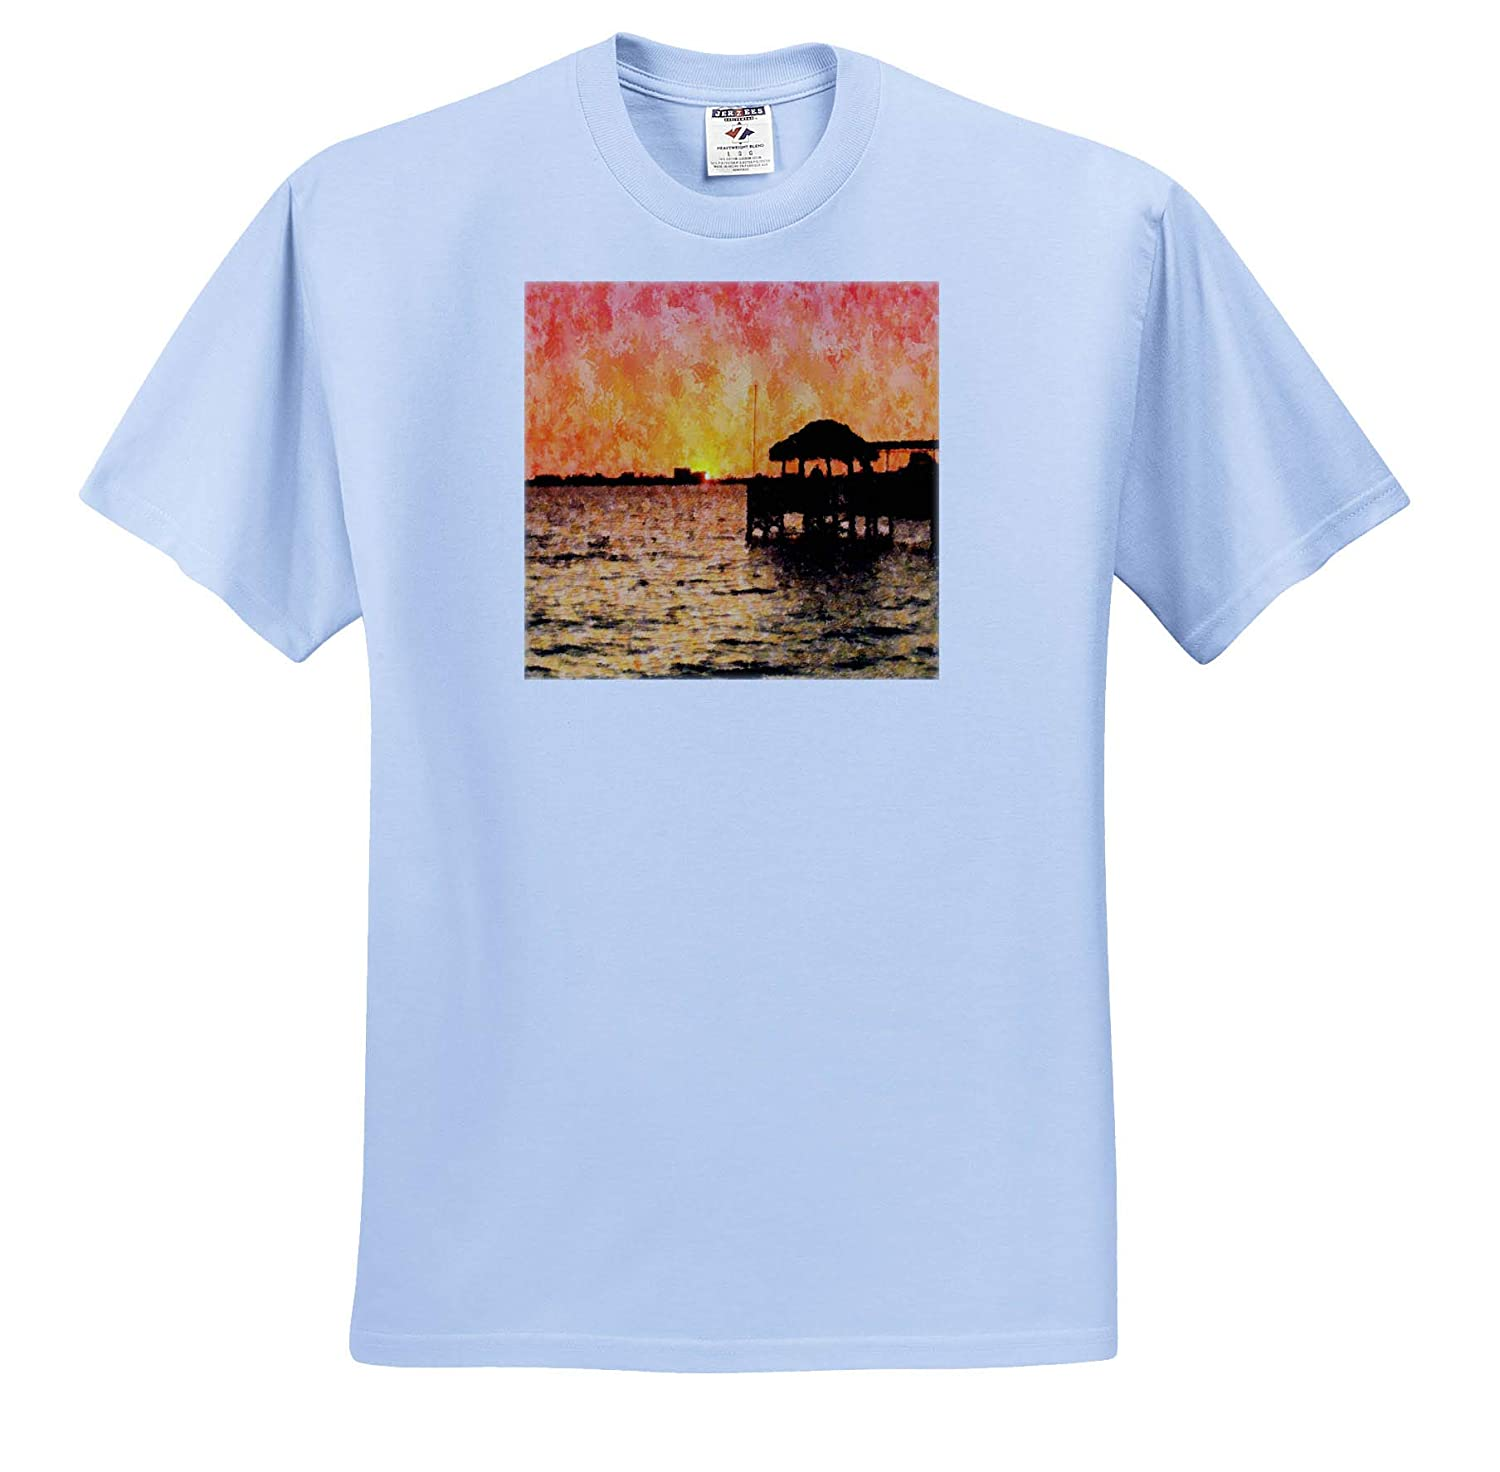 T-Shirts 3dRose Lens Art by Florene Digital Paintings Image of Neon Yellow Blue and Fuchsia Melt Abstract Painting